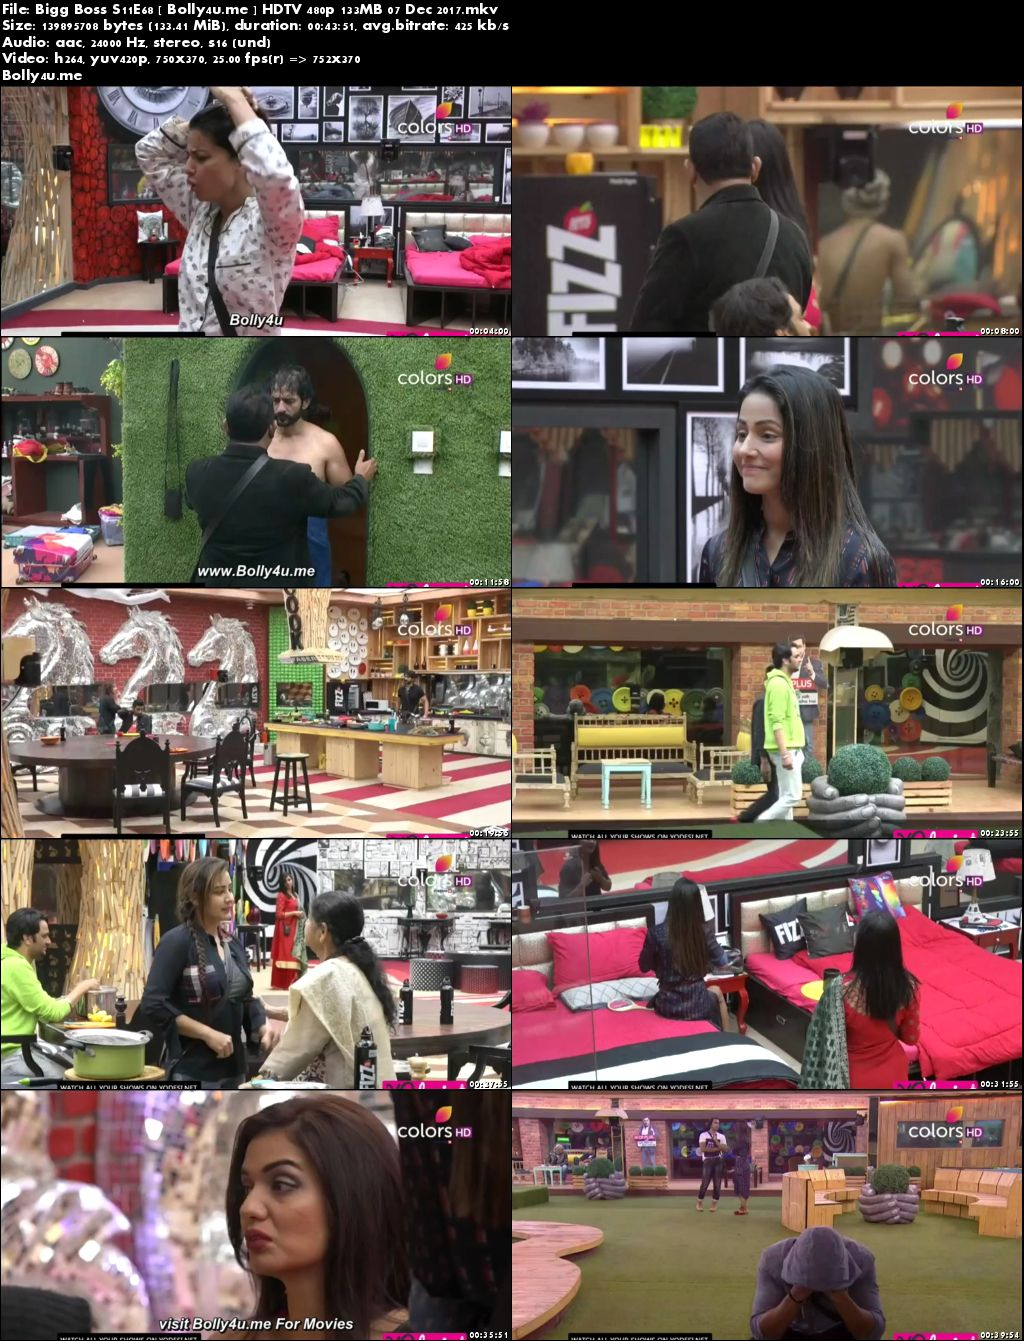 Bigg Boss S11E68 HDTV 480p 130MB 07 Dec 2017 Download